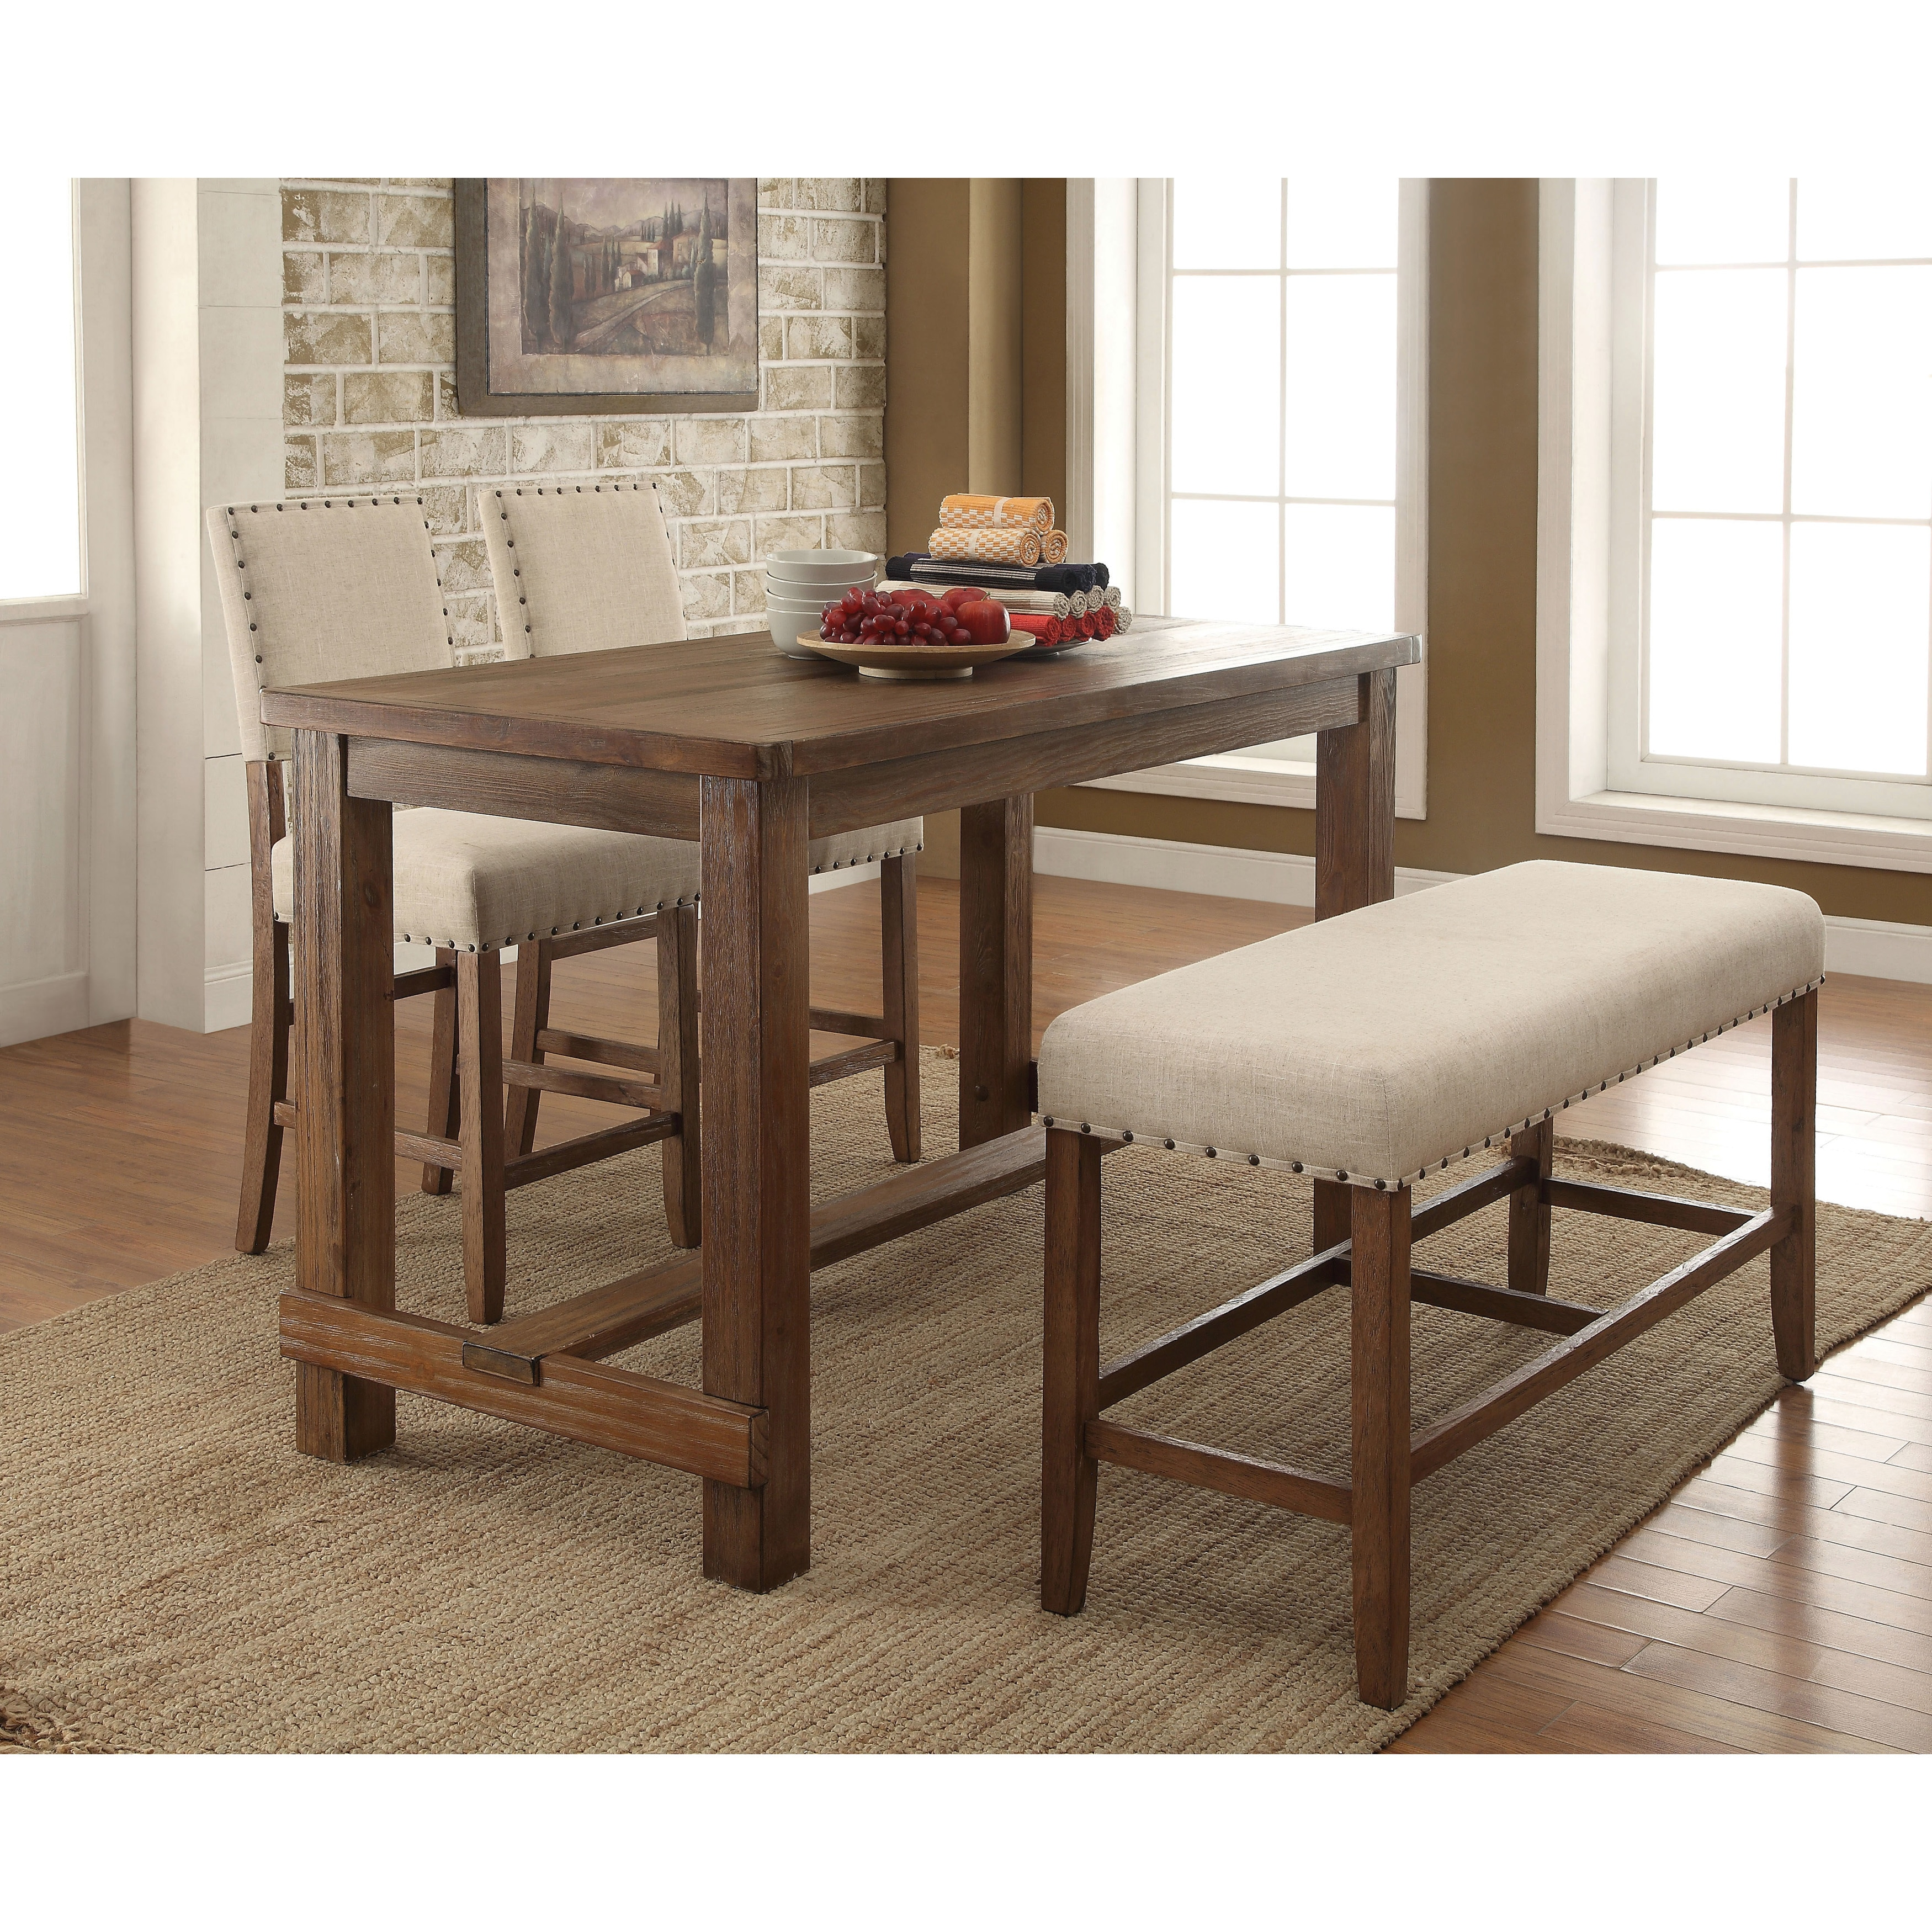 america bench furniture dining height product with natural telara garden home tone contemporary of counter set